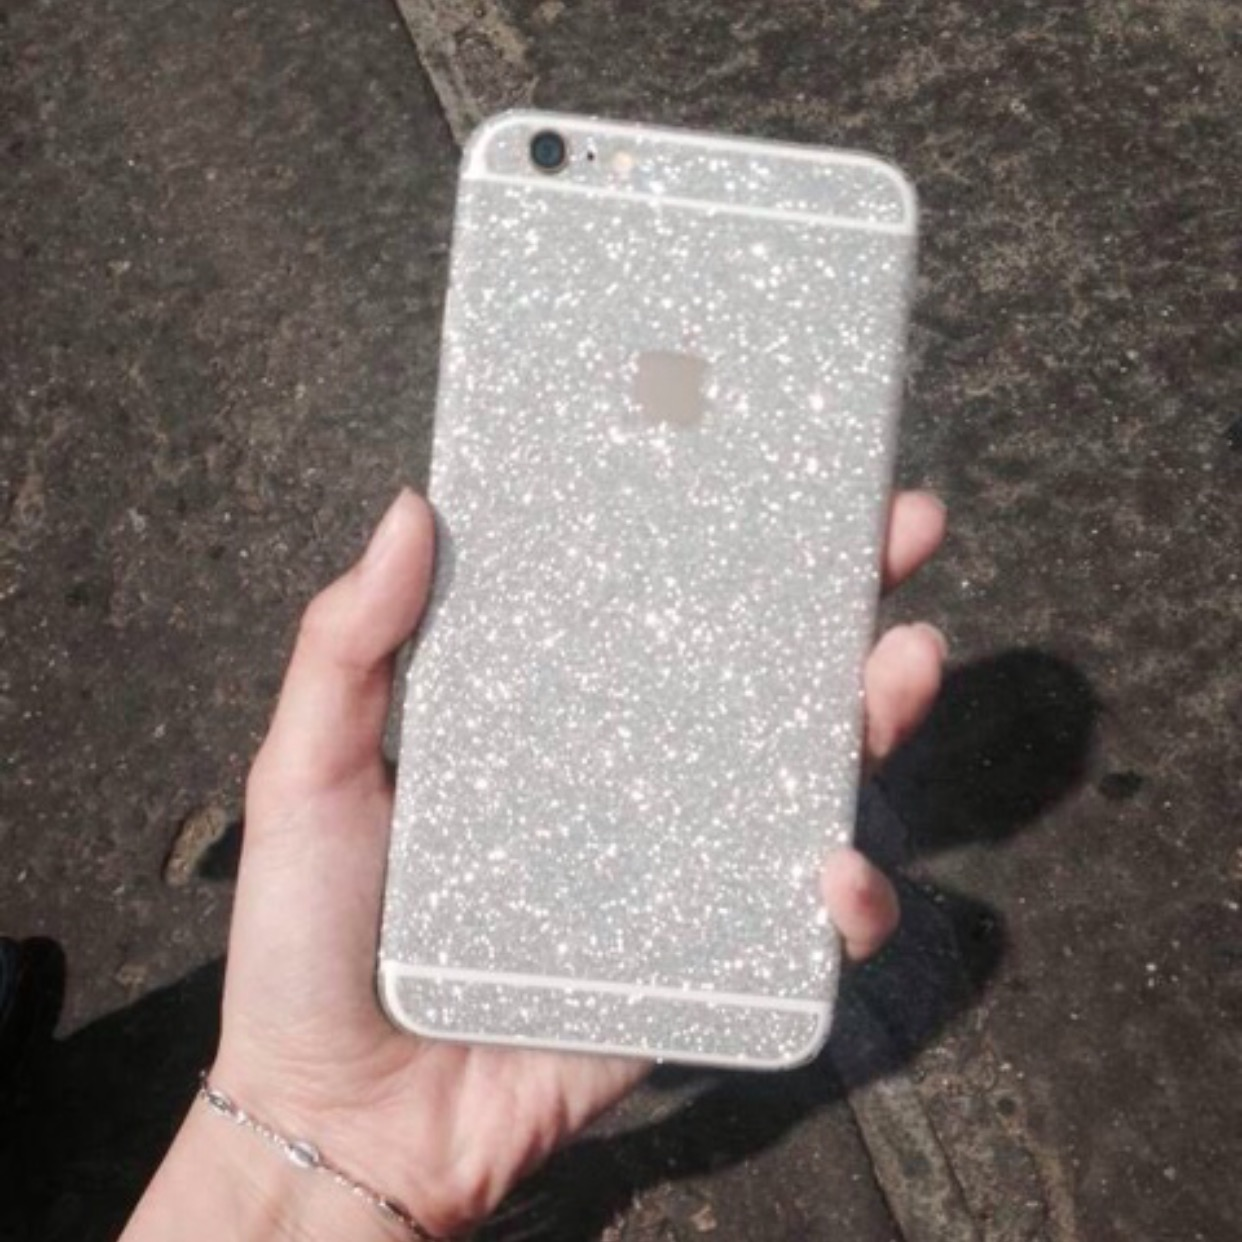 Silver Glitter Sticker Skin iPhone 6 iPhone 6 Plus iPhone 5 5s on ... effc74d6d